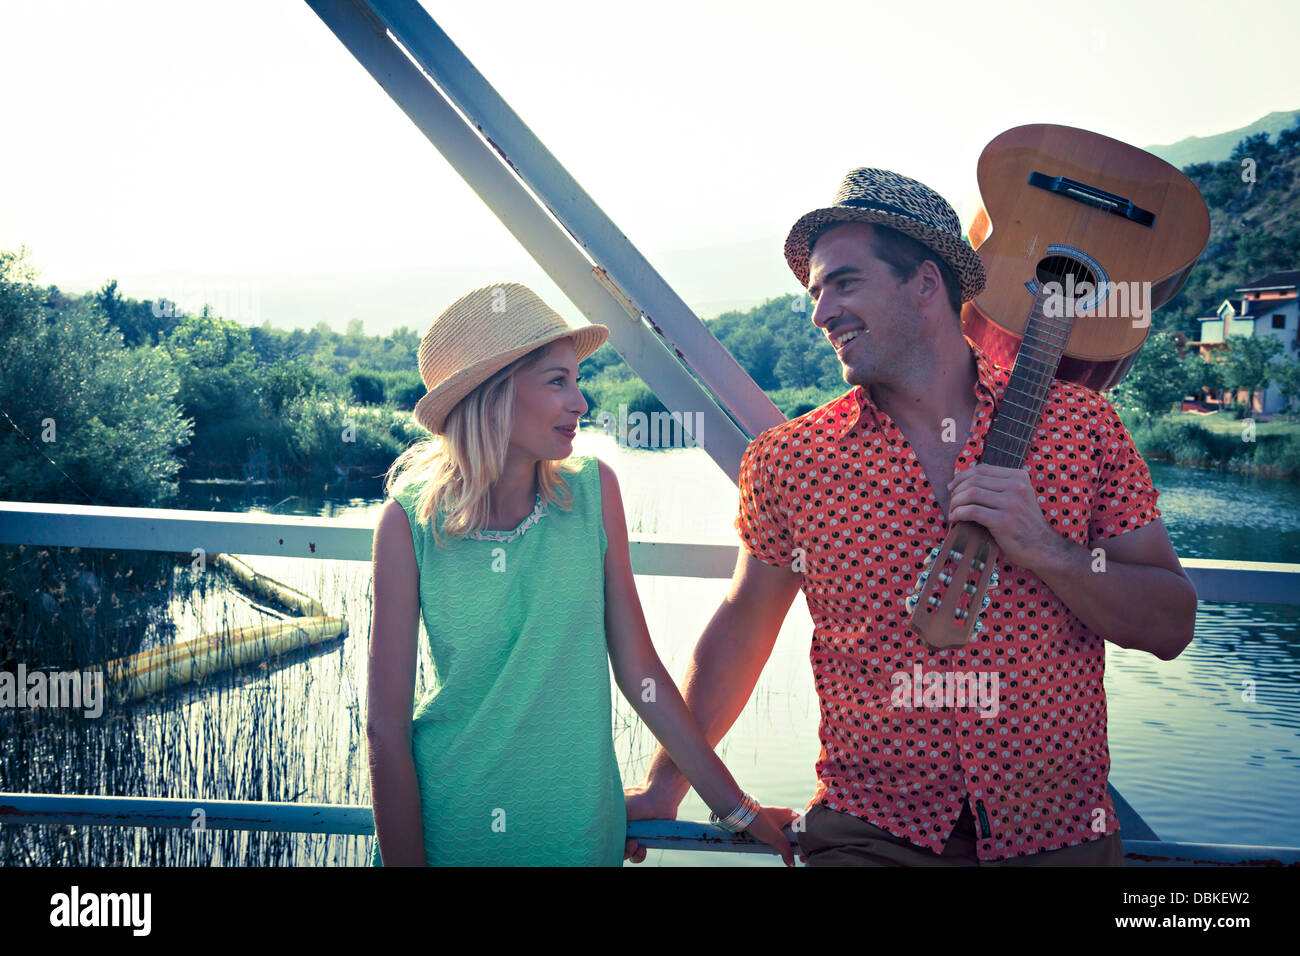 Croatia, Dalmatia, Young couple on a footbridge, man with guitar - Stock Image